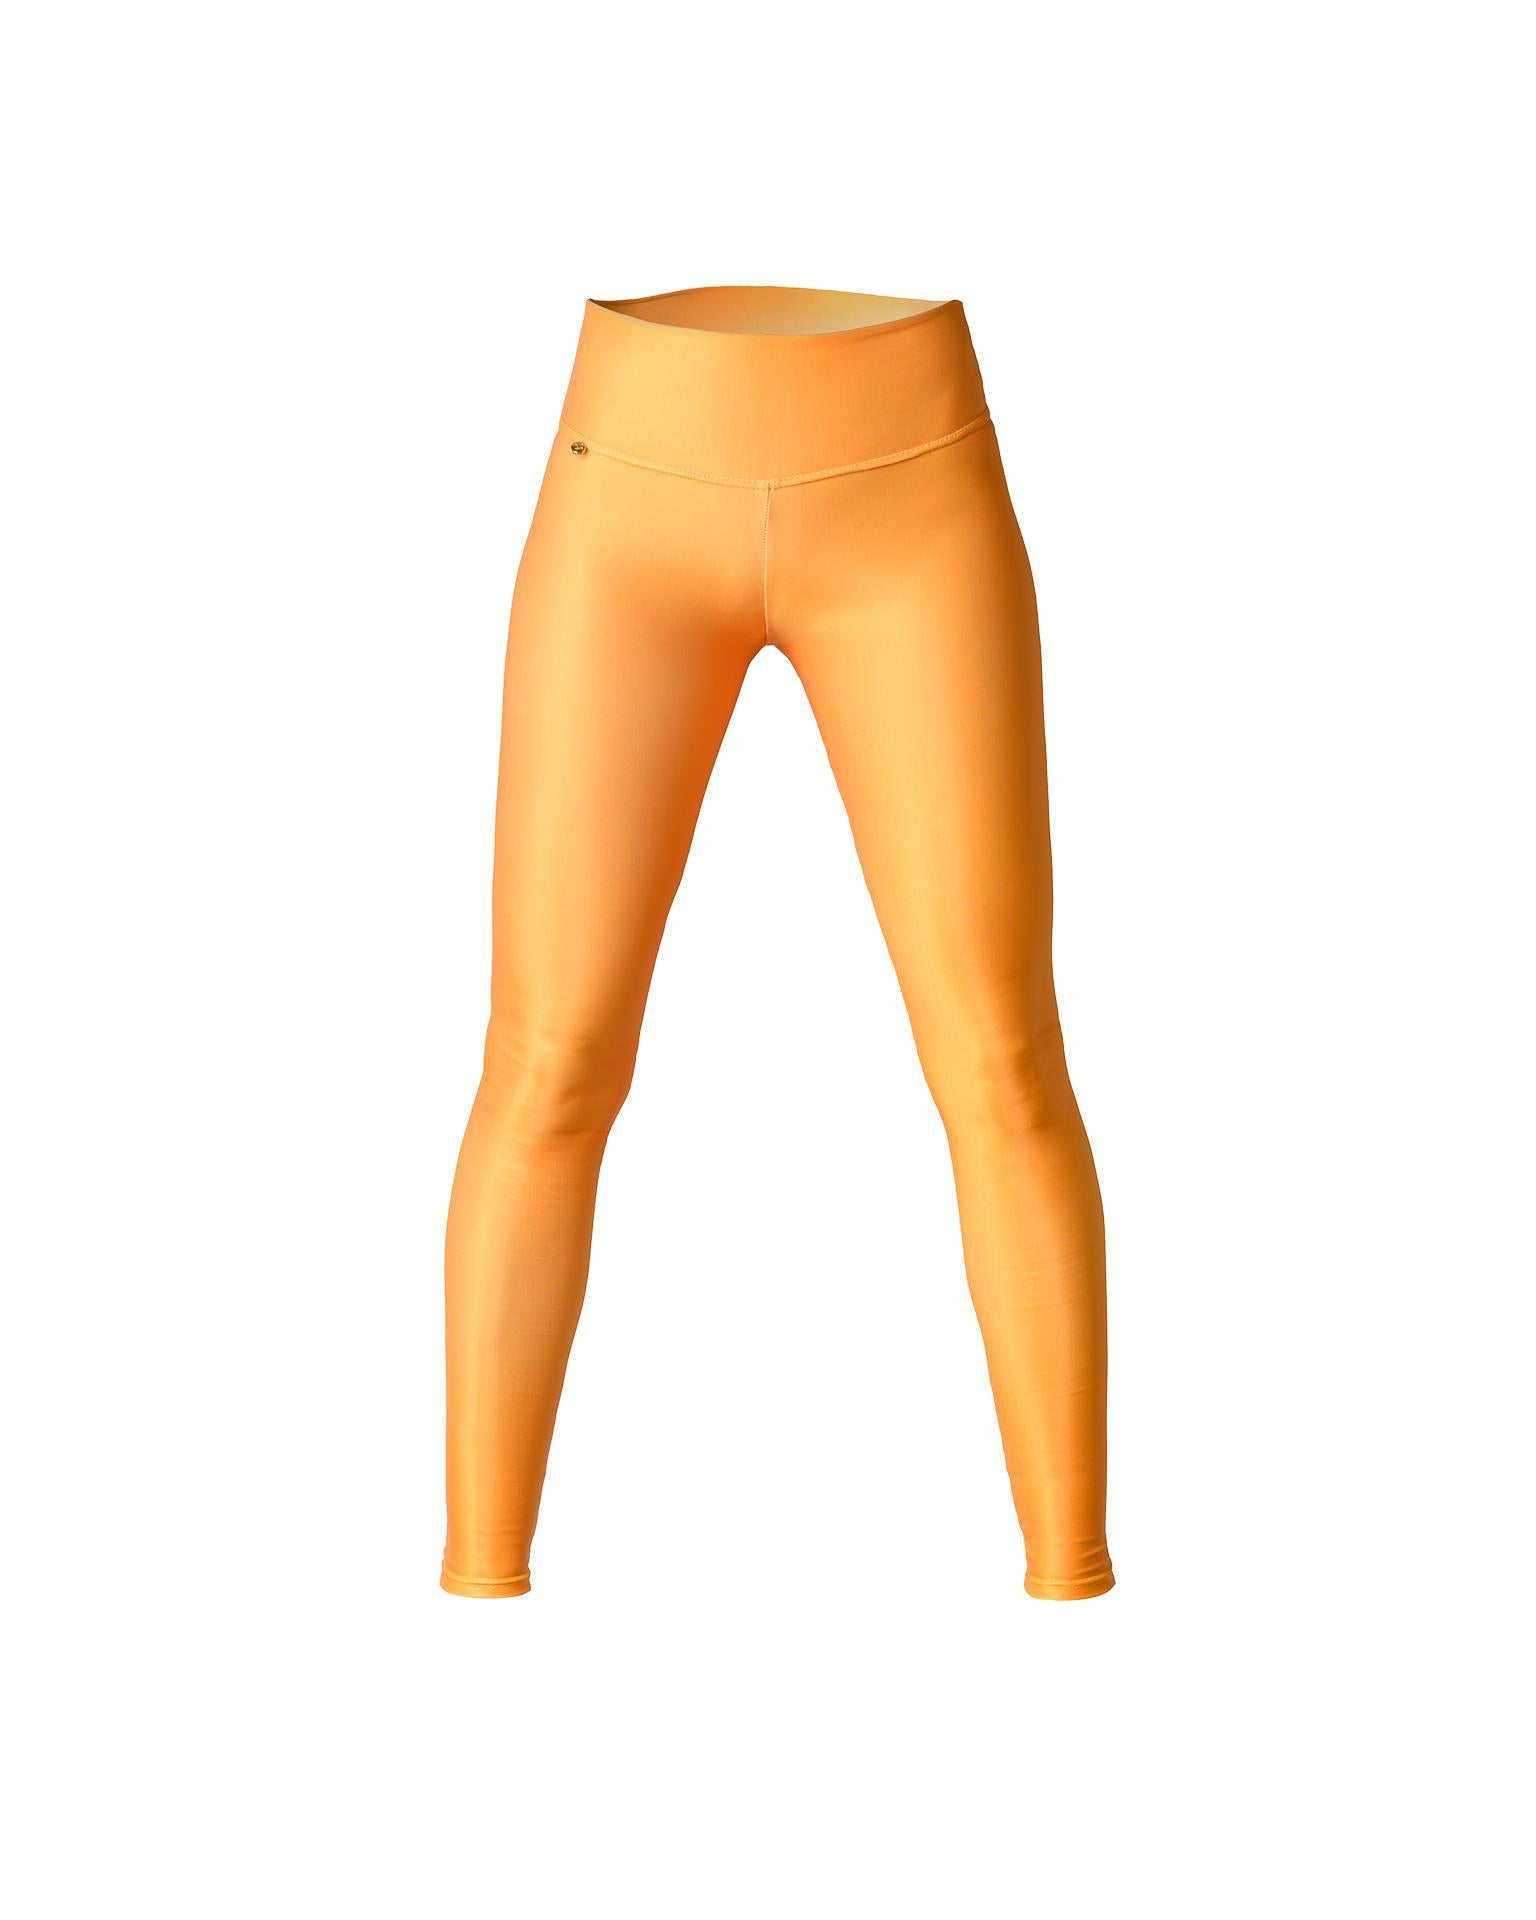 Antigua Leggings Burnt Yellow